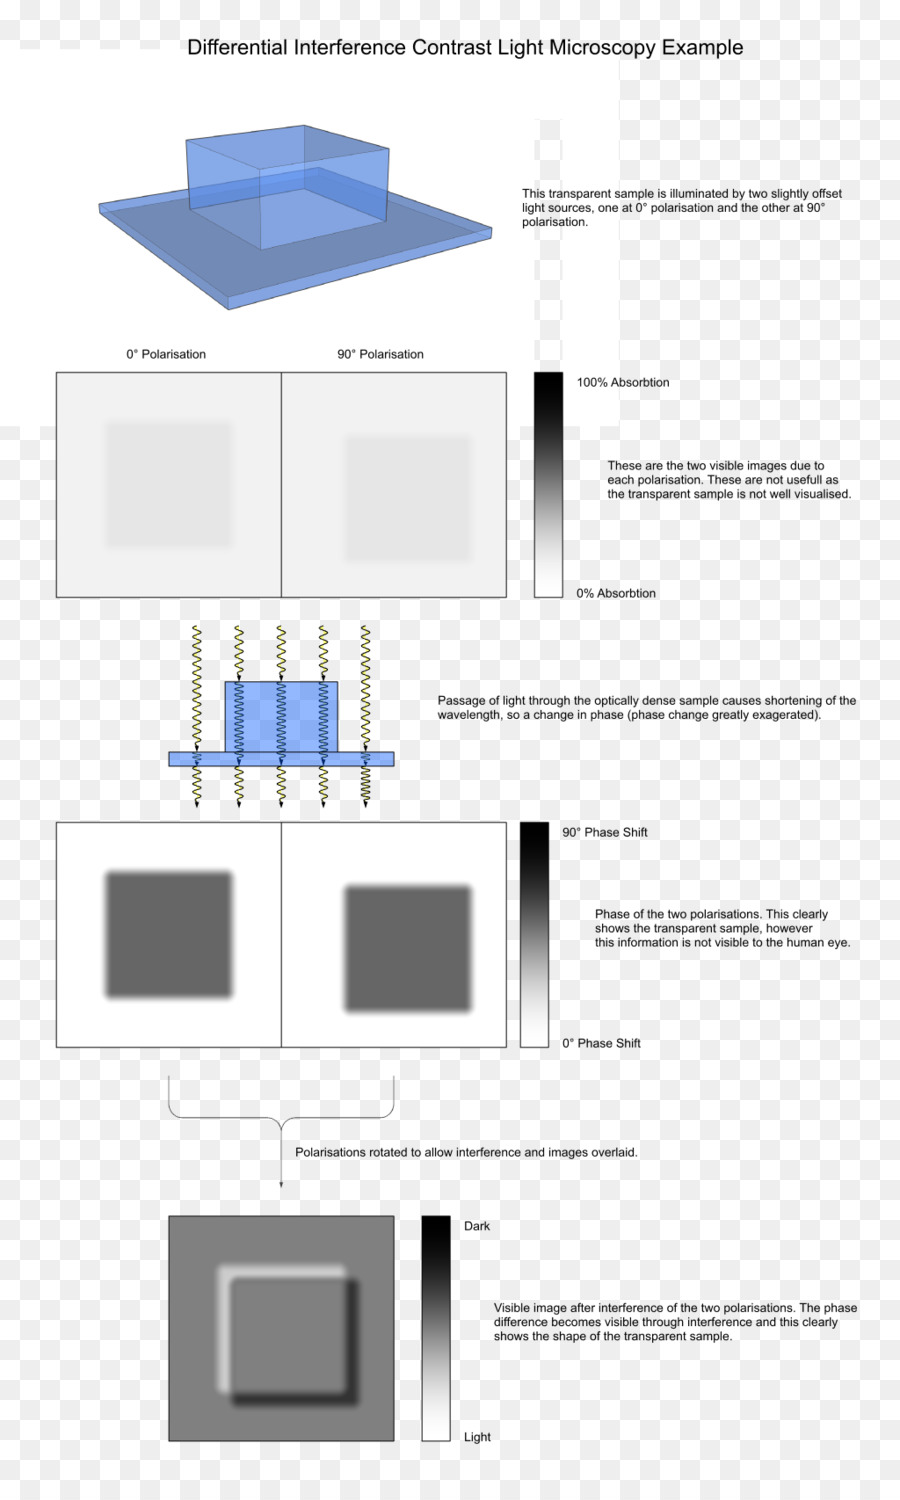 medium resolution of light differential interference contrast microscopy microscopy text diagram png